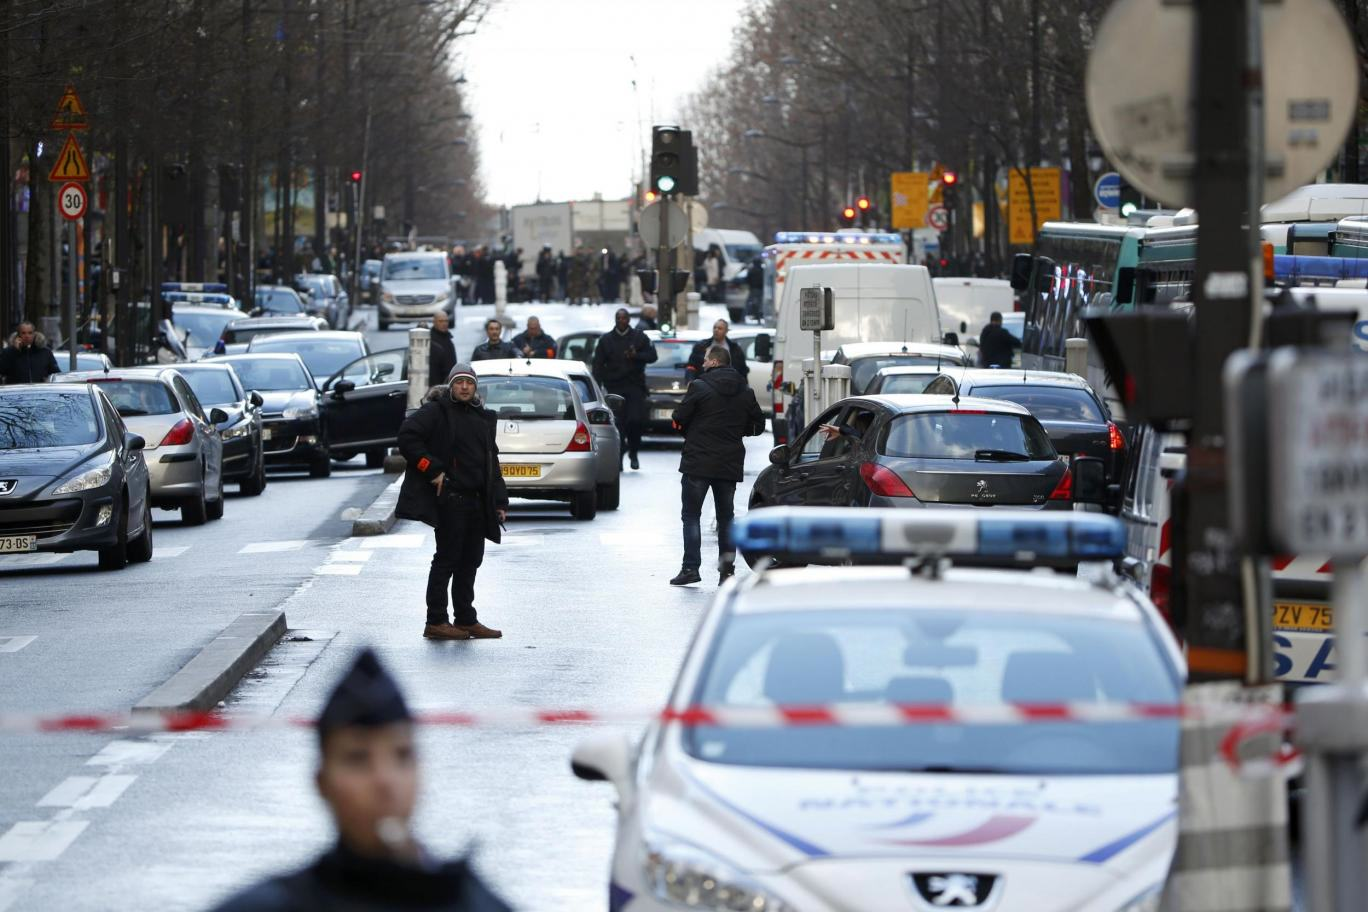 Knife Wielding Man Wearing Suicide Belt Shot Dead Outside Paris Police Station Paris french police